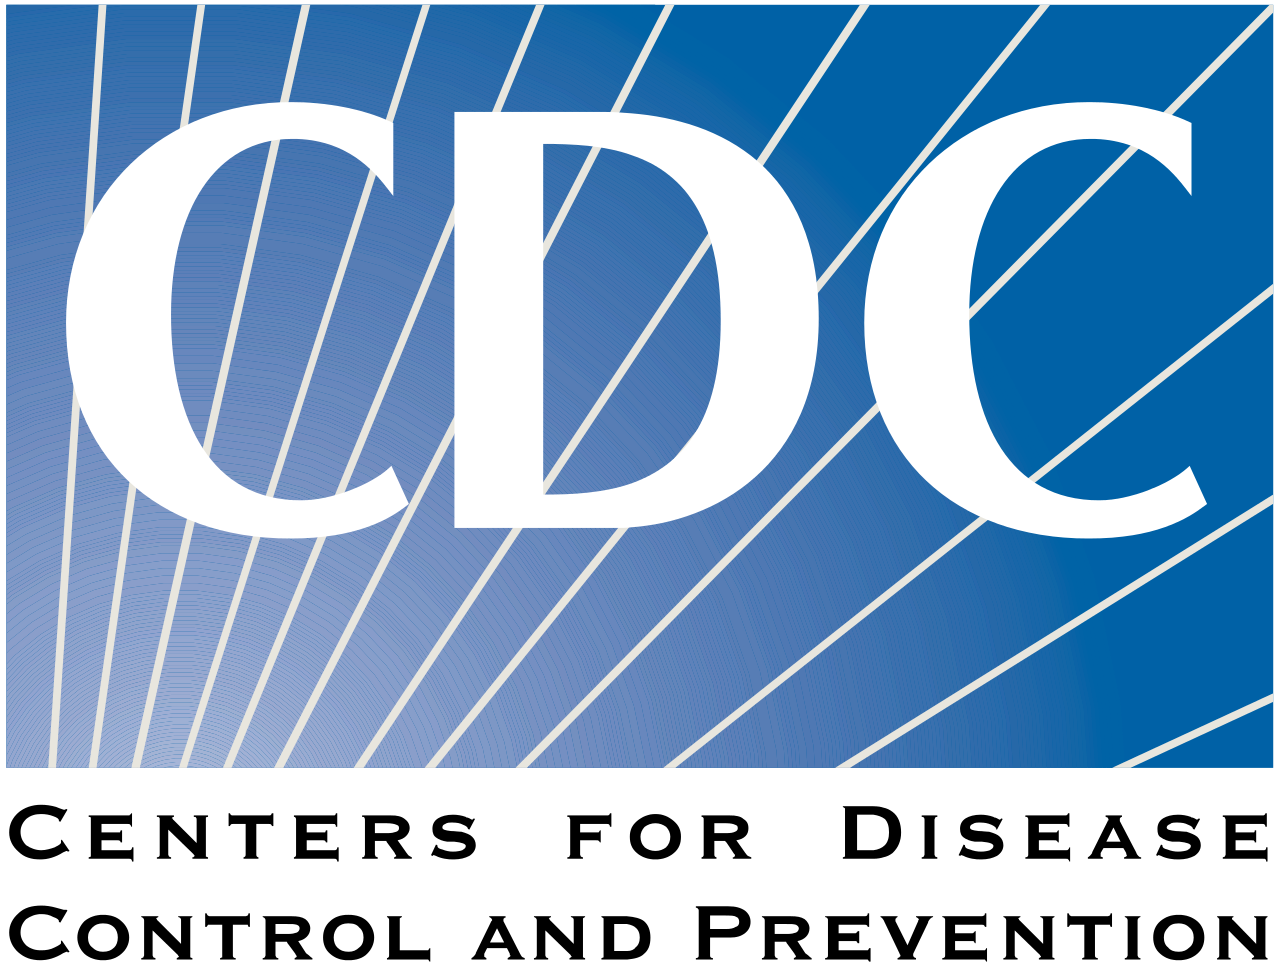 CDC Awards Fenway Health, AIDS Action, Multicultural AIDS Coalition $3.78m for 'Getting To Zero' HIV Prevention Partnership